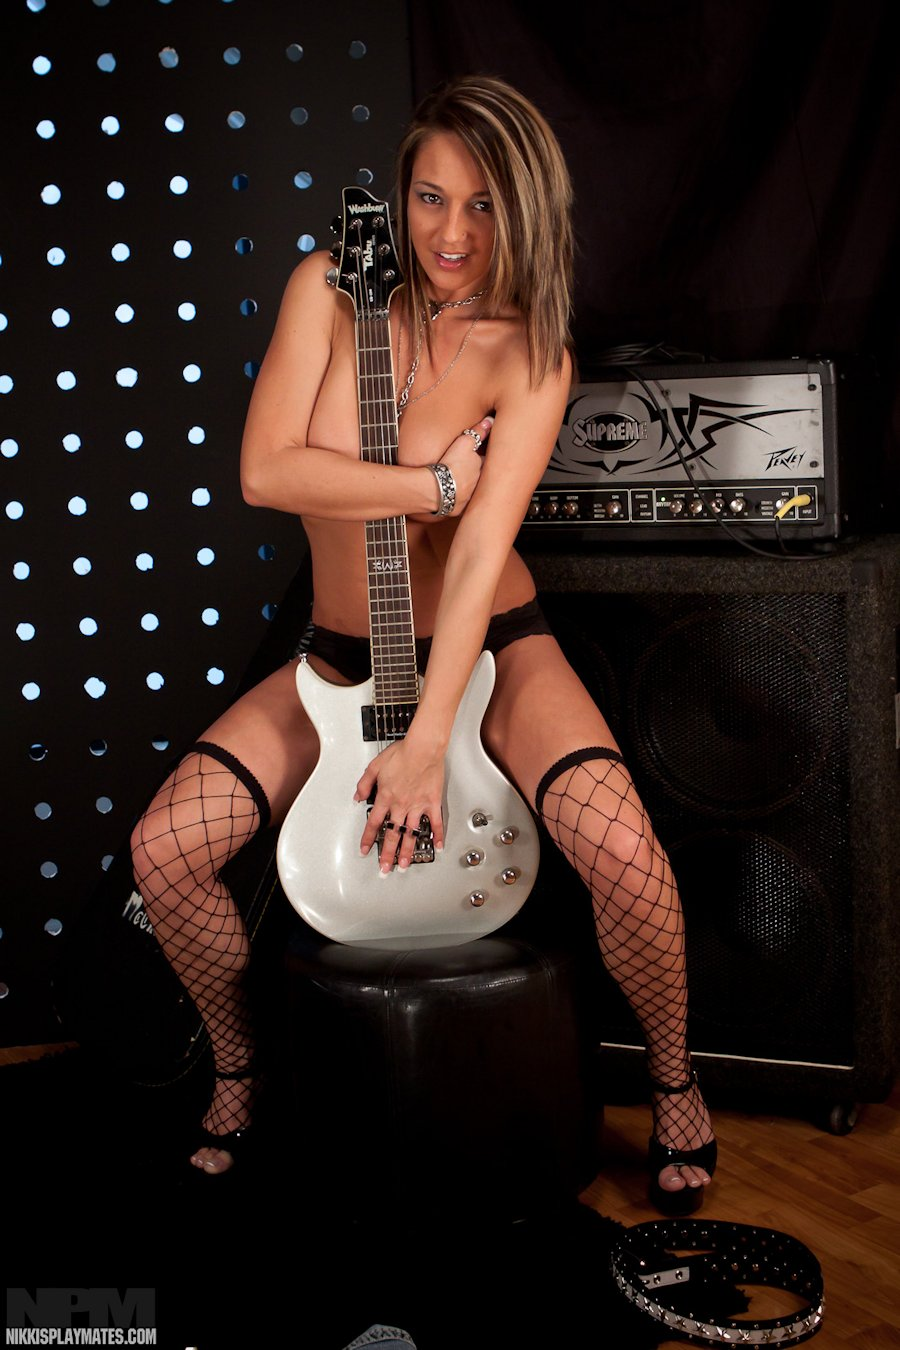 girls guitar sex video